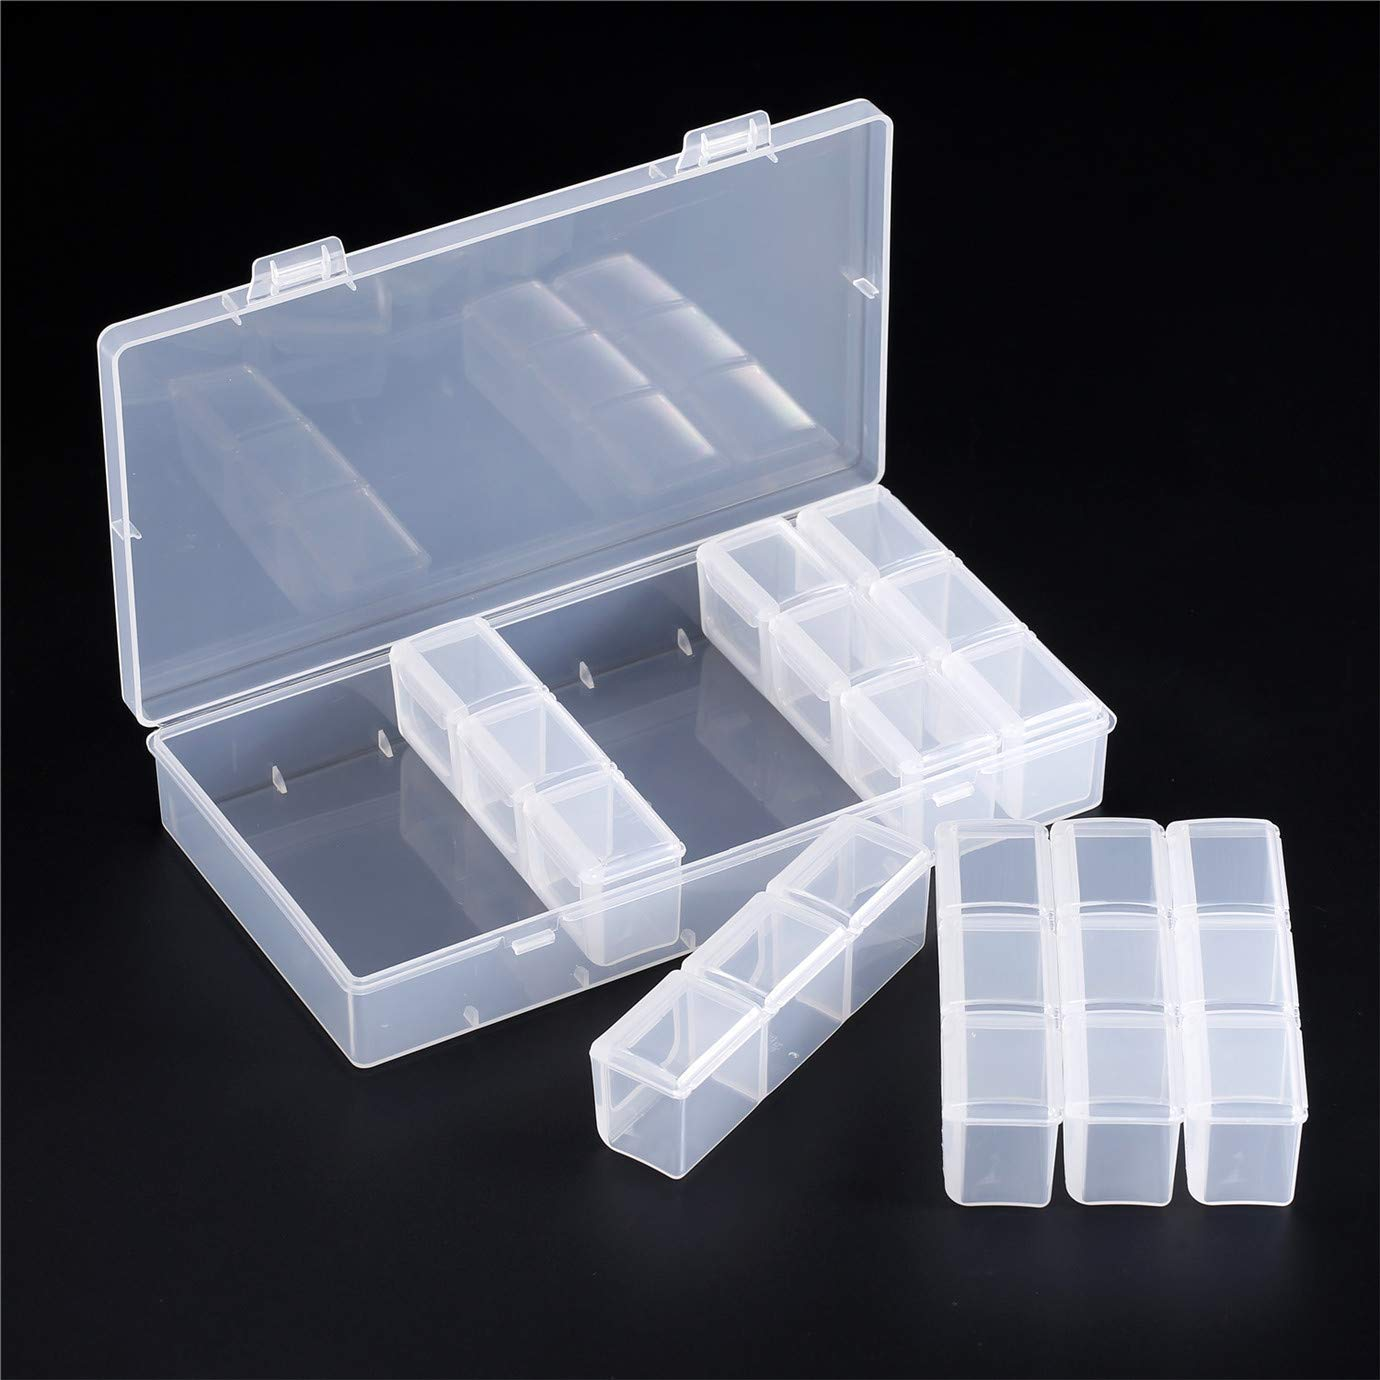 Pencils Container for Cabinets Clear Notebooks Office Storage Organizer Bin with Handles Notebooks Highlighters 5 Wide 5 Wide Drawers for Pens Clear MetroDecor 0330MDO Desks Workspace mDesign Plastic Home BPA Free